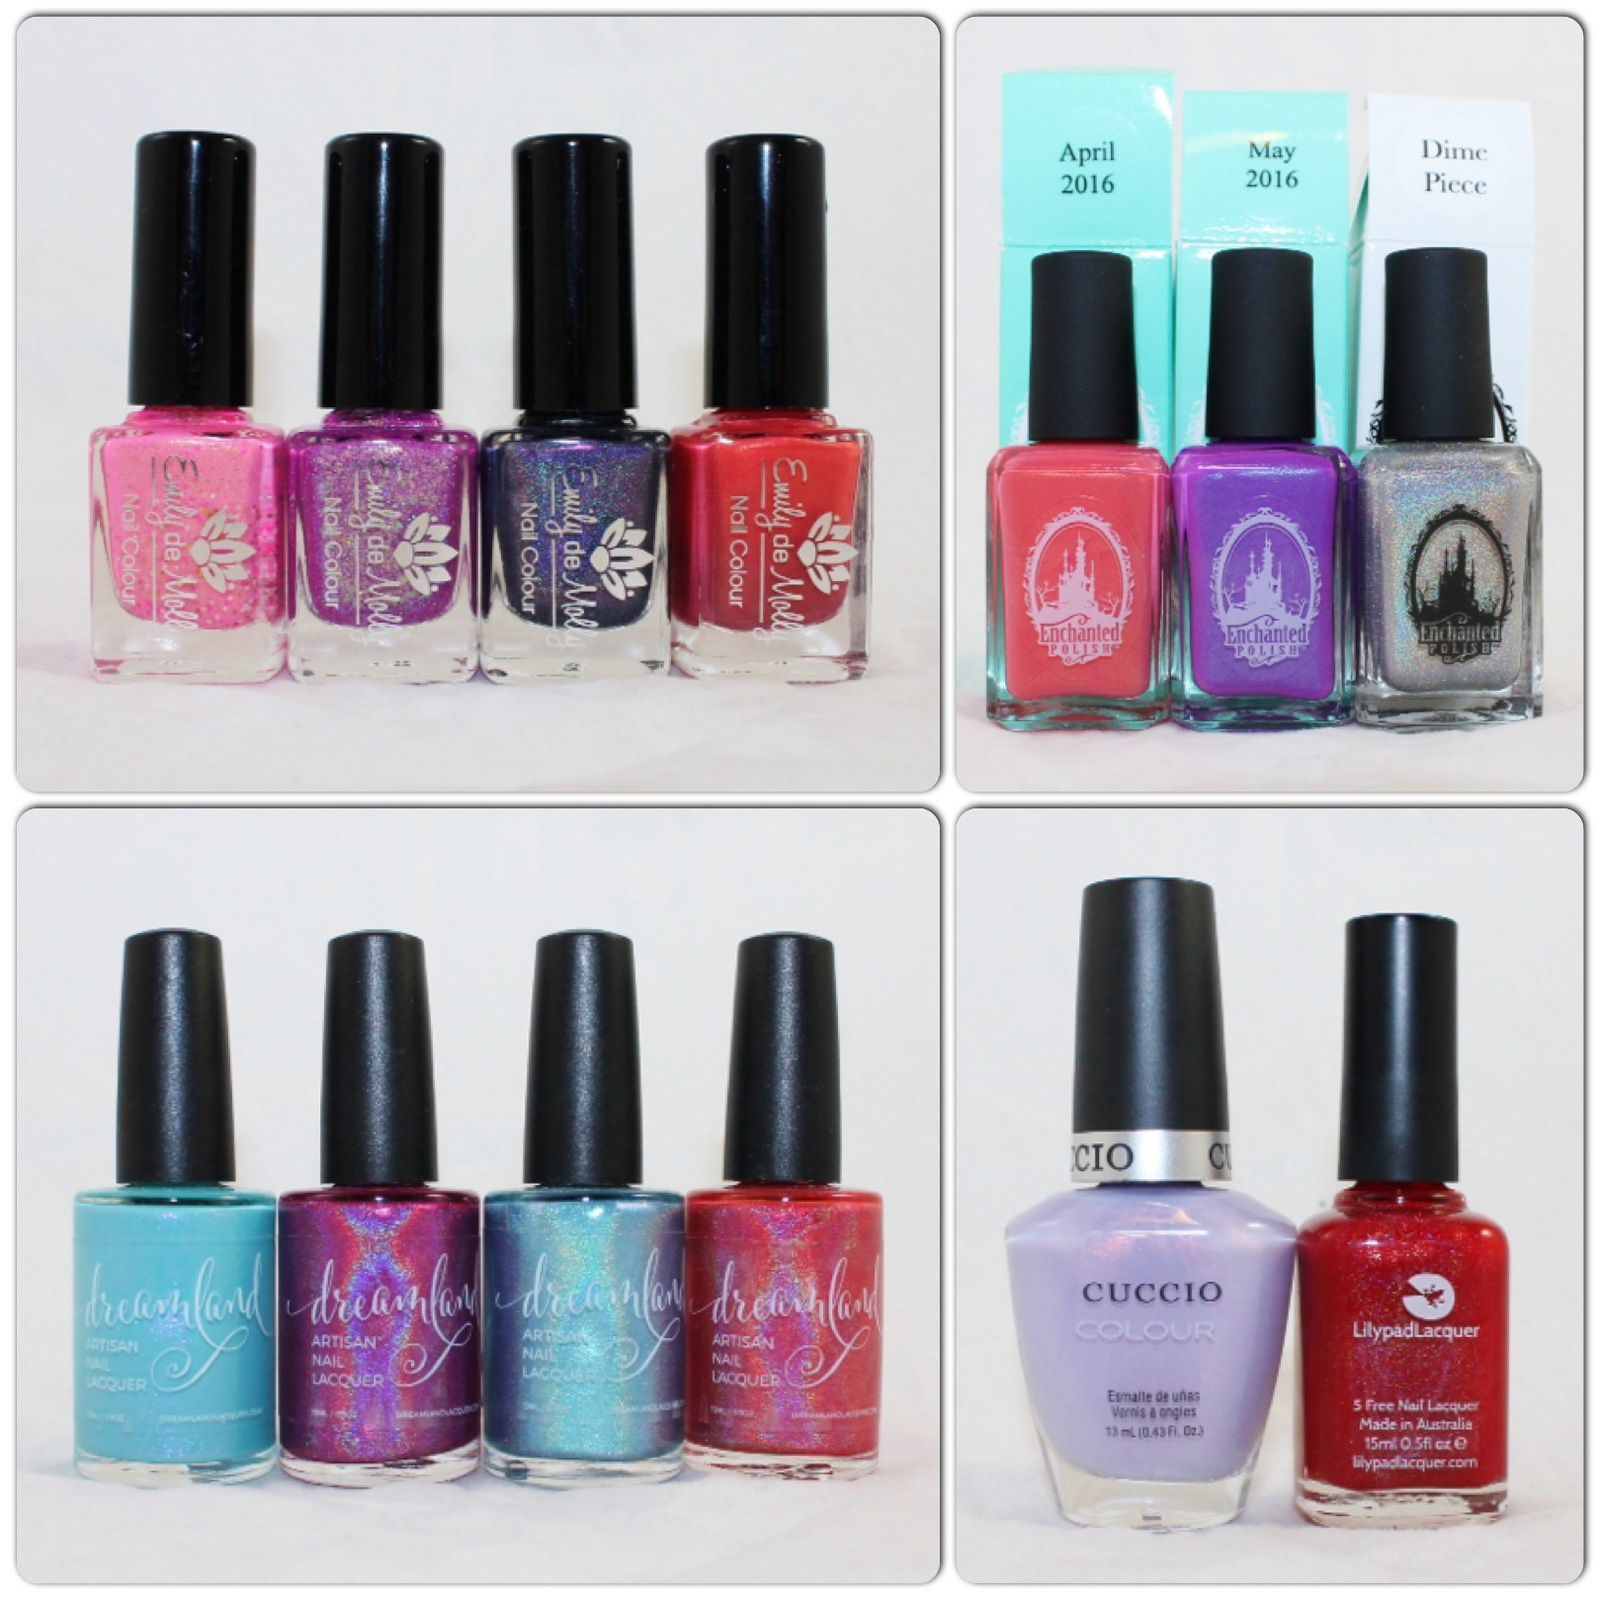 Emily de Molly Smiling Fortune, Showdown, Spell Check, LE 32. Enchanted Polish April 2016, May 2016, Dime Piece. Dreamland Lacquer Naiad Reborn, Dragonberry, Aurora Four-ealis, Coral of the Story. Cuccio Message in a Bottle. Lilypad Lacquer Taury.